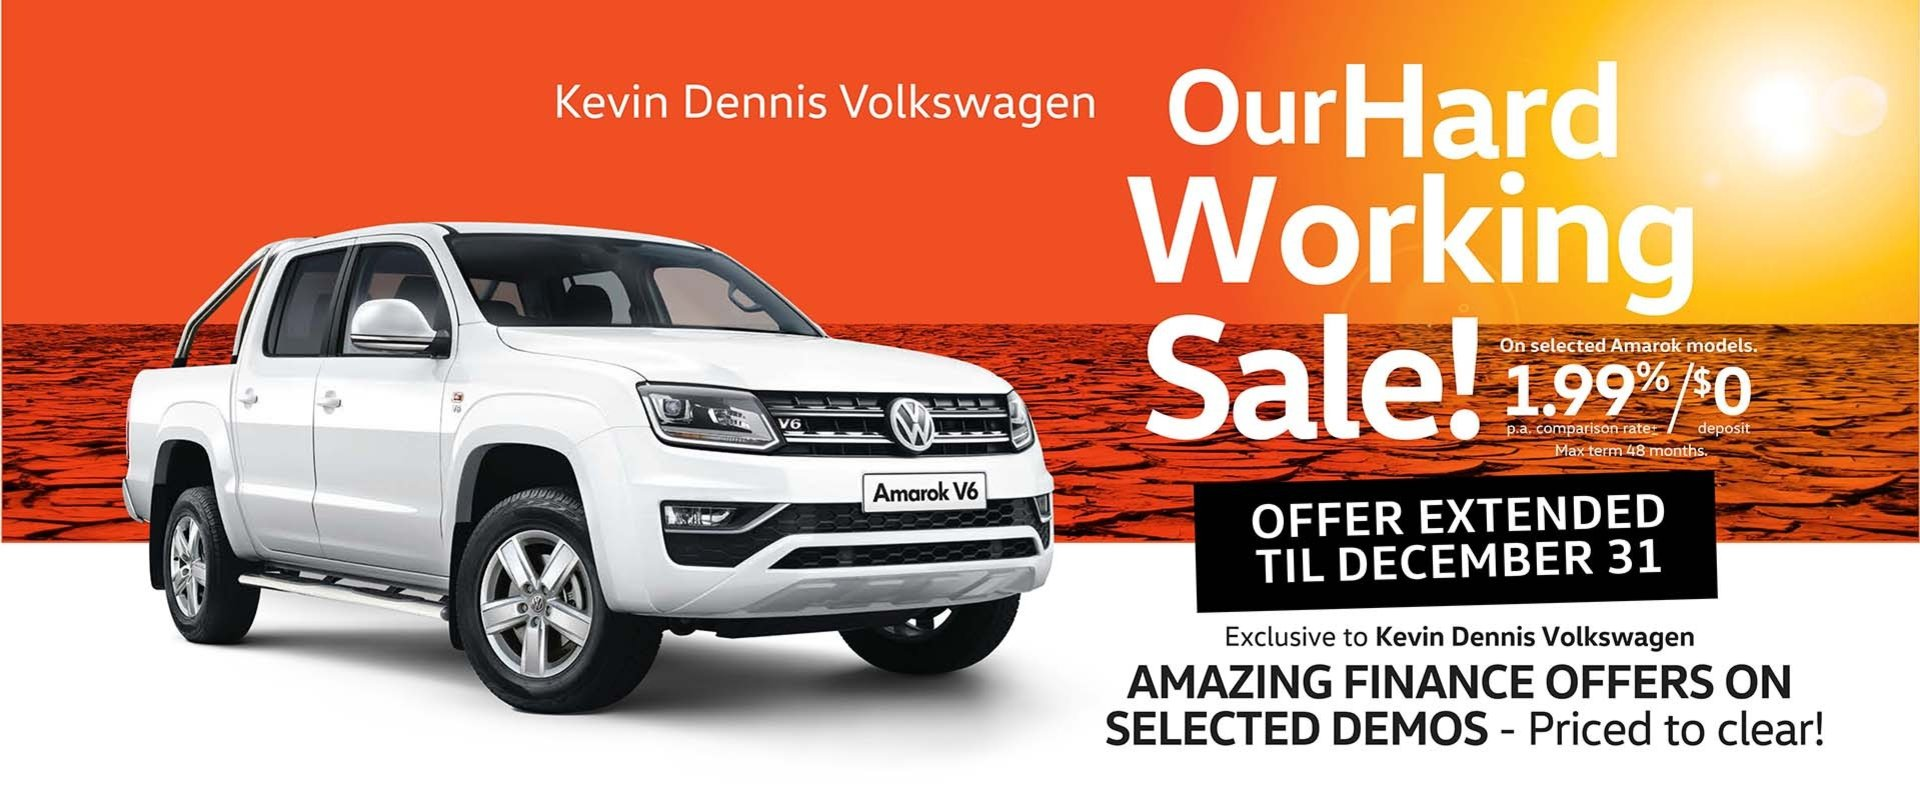 Kevin Dennis VW - Our Hard Working Sale